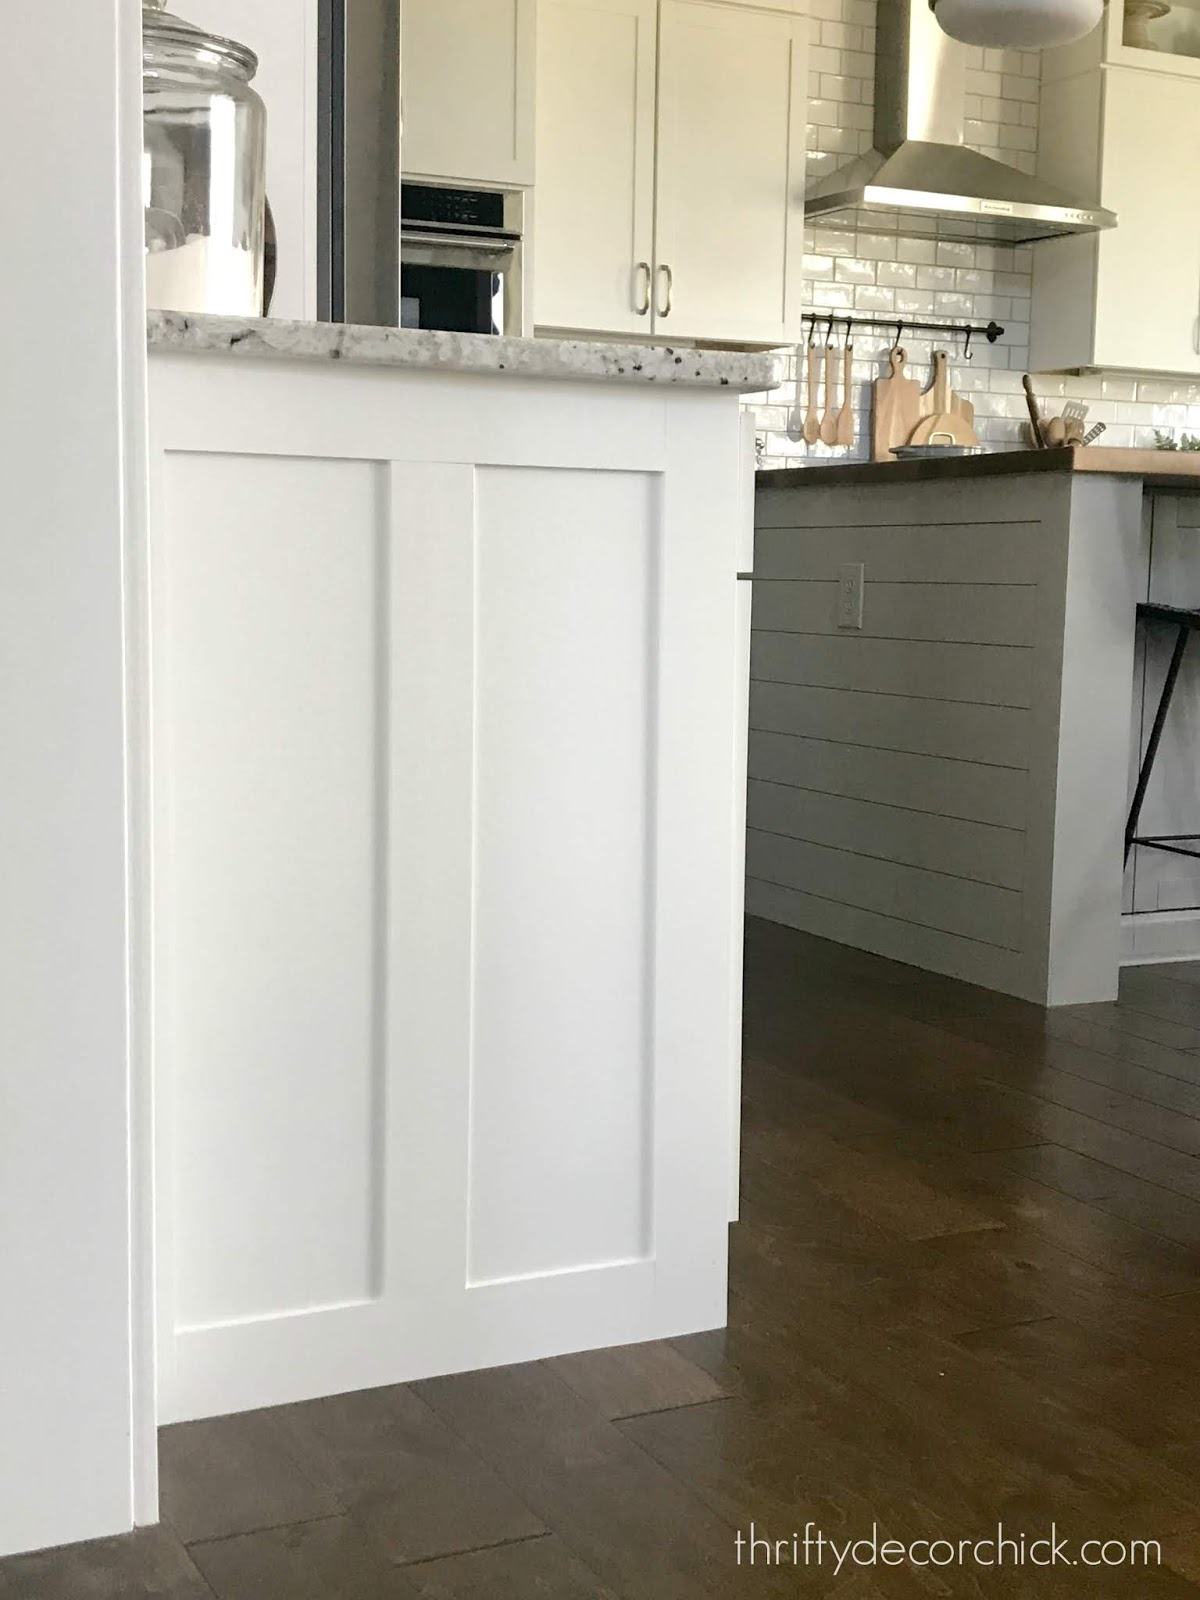 Adding a custom touch to the ends of kitchen cabinets